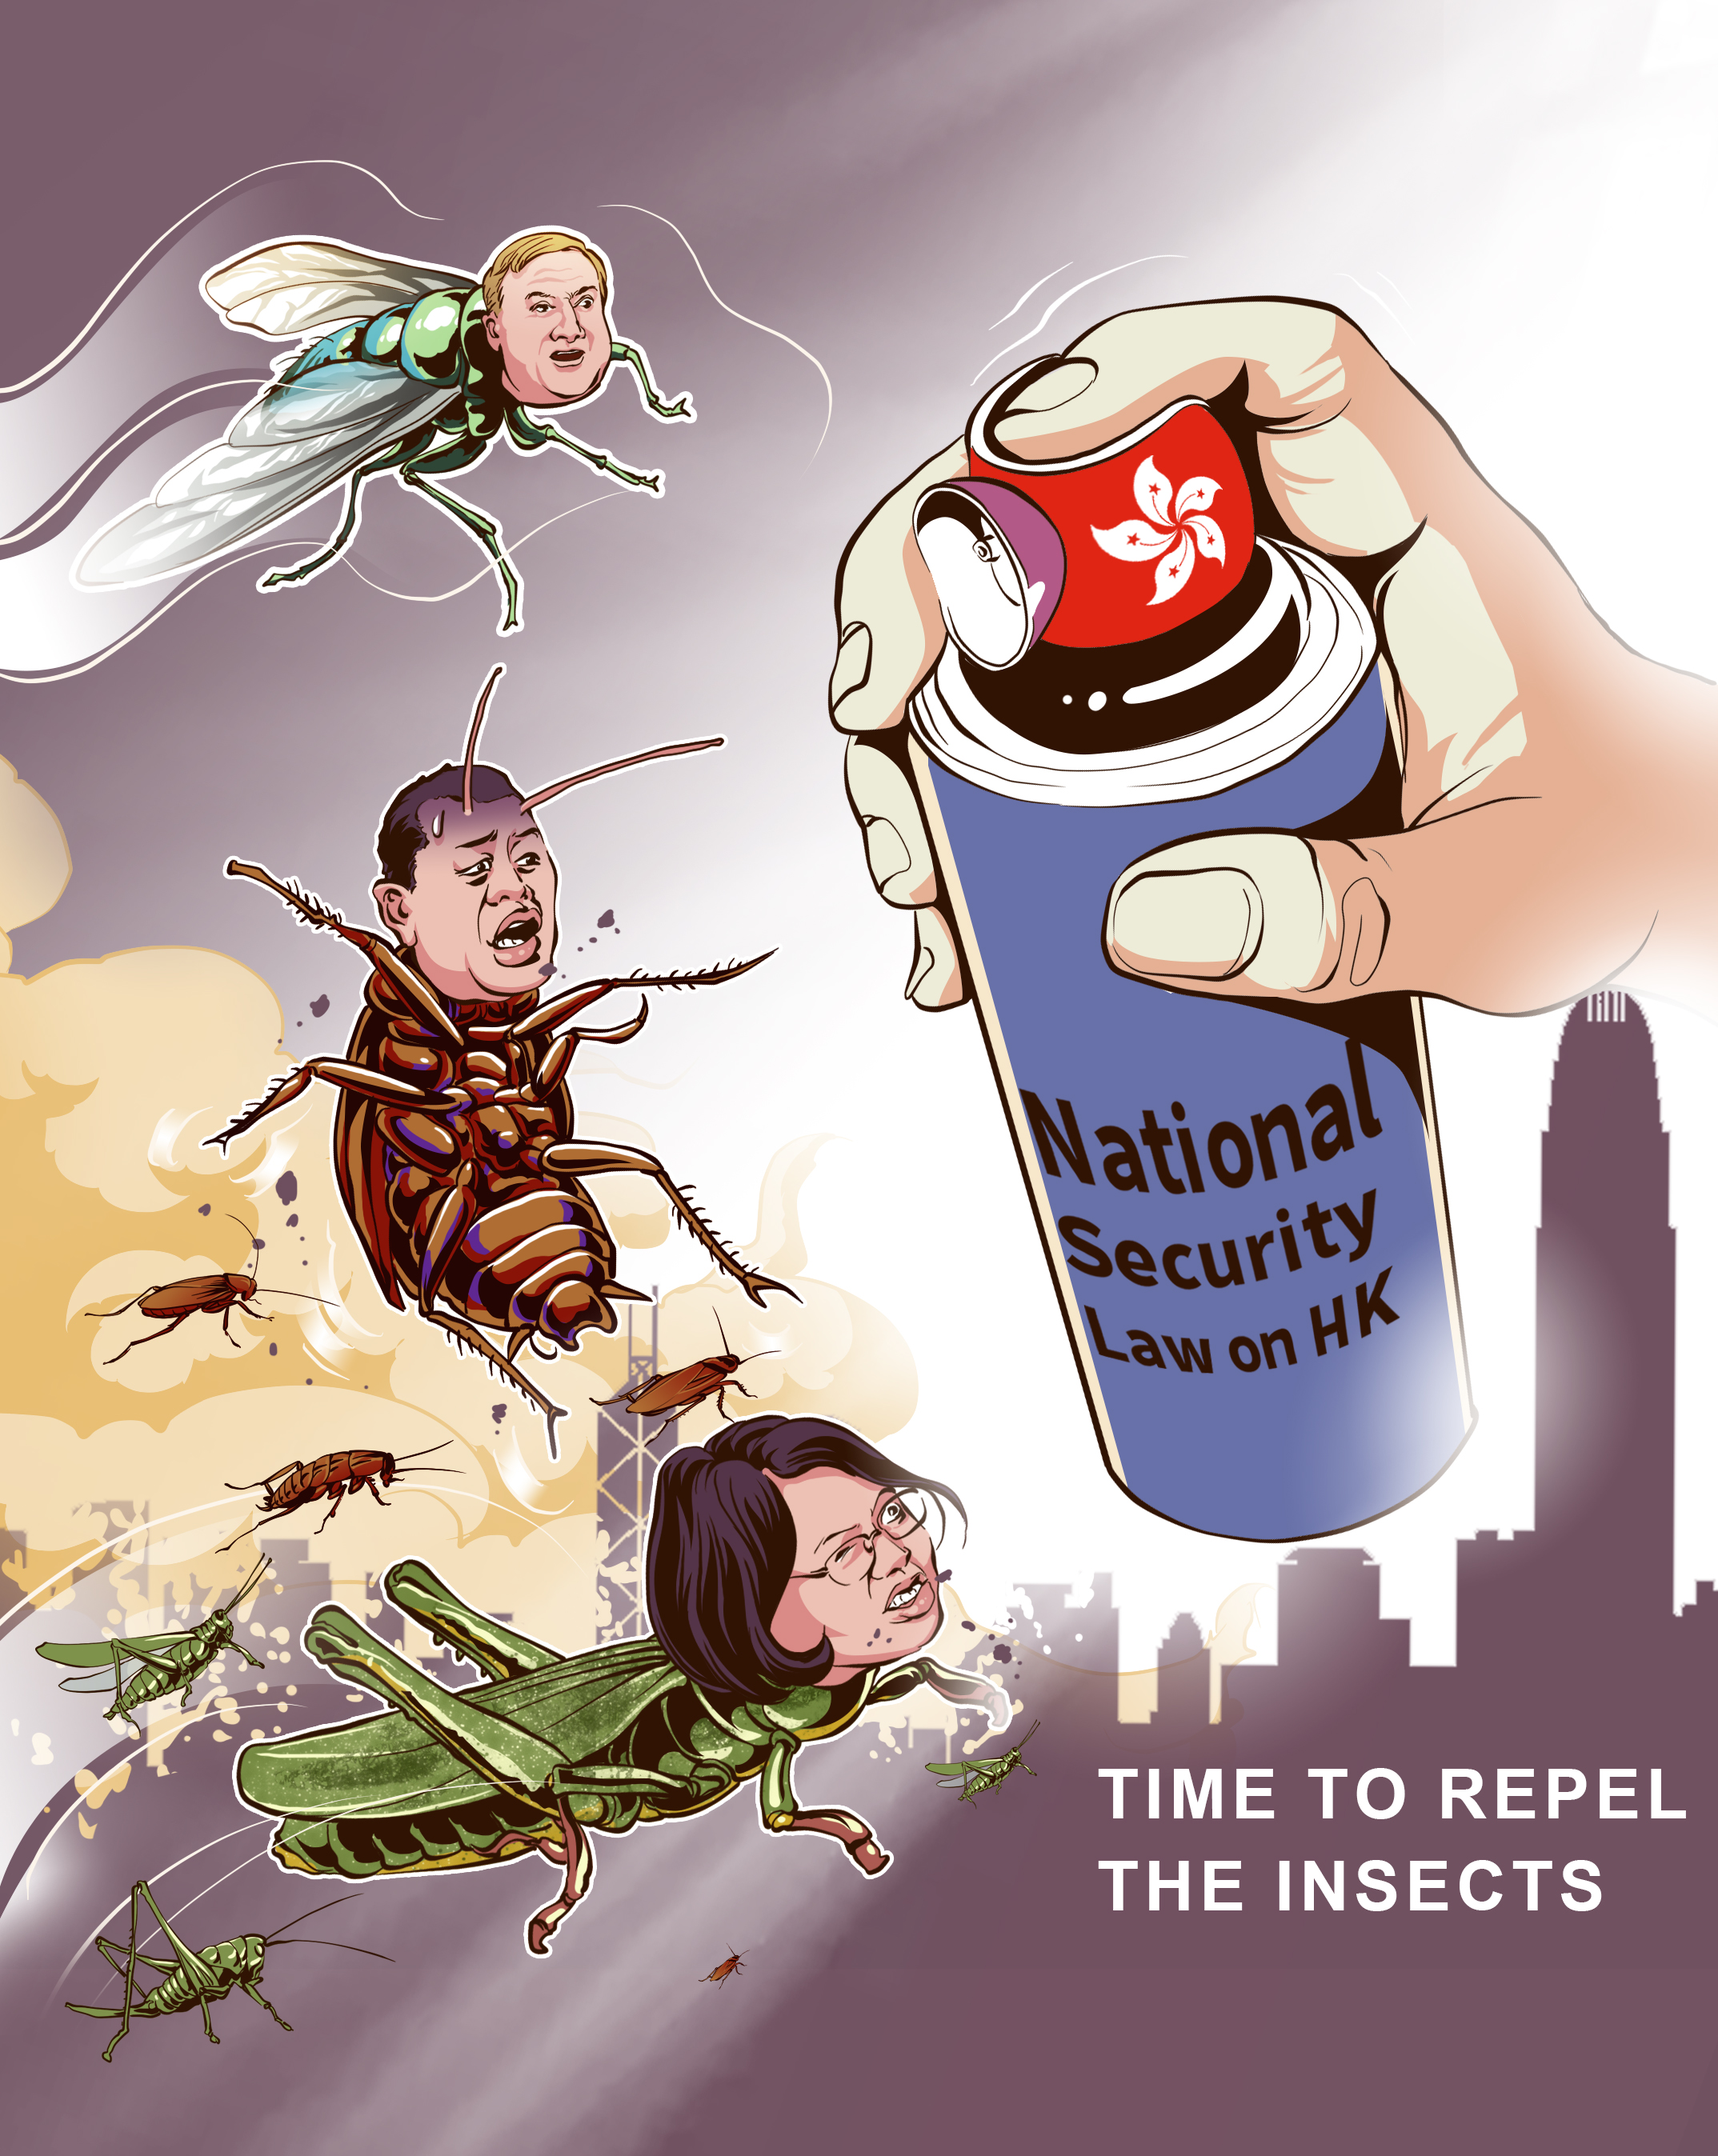 Poster: Time to repel the insects